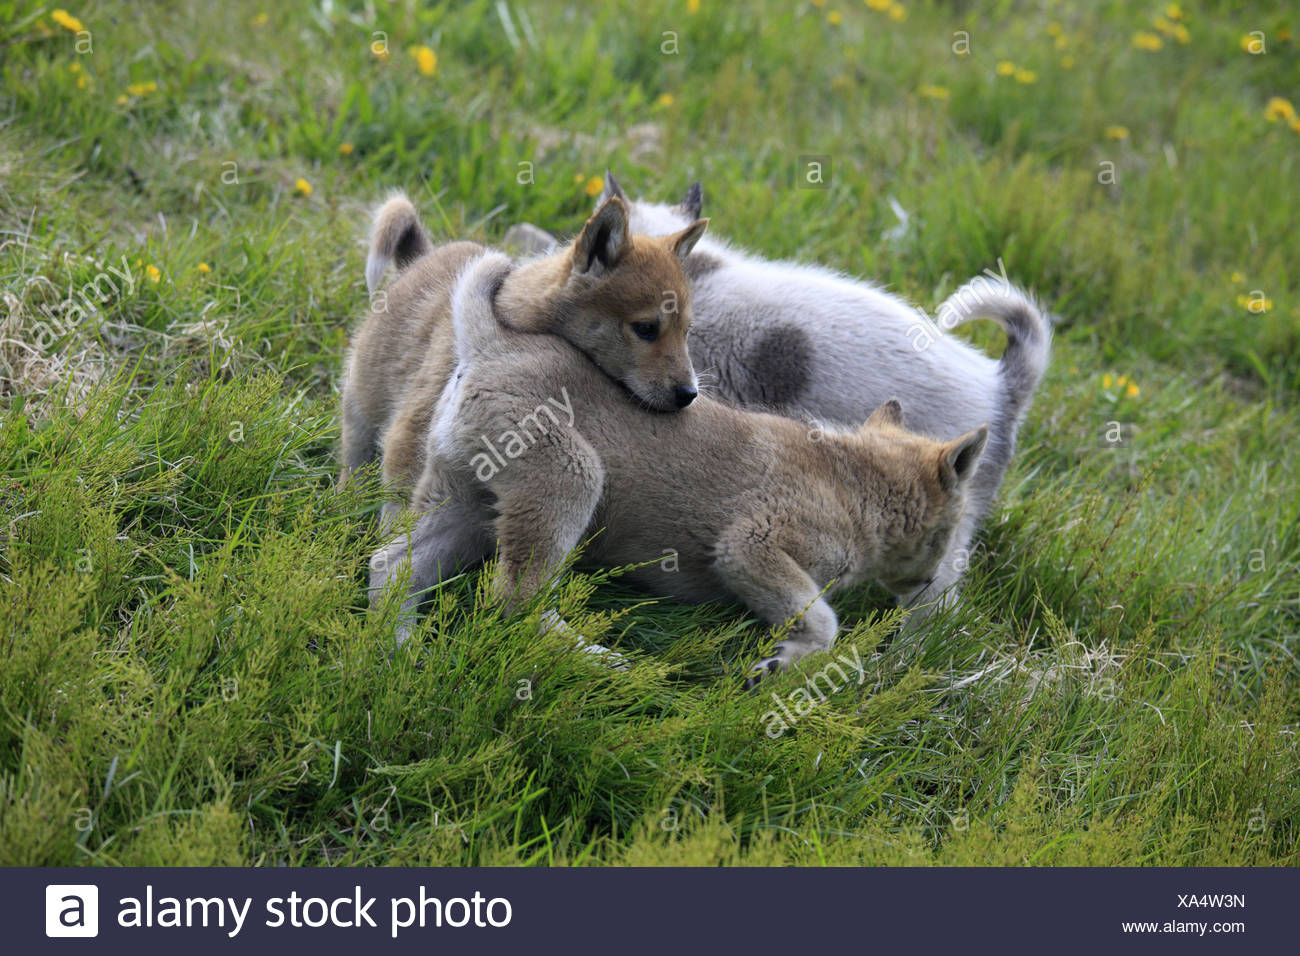 Greenland, Sisimiut, sled dogs, huskies, puppies, loses, meadow, Western Greenland, animals, dogs, benefit animals, outside, deserted, keeping of pets, young animals, young animals, play, nicely, sweetly, small, three, - Stock Image